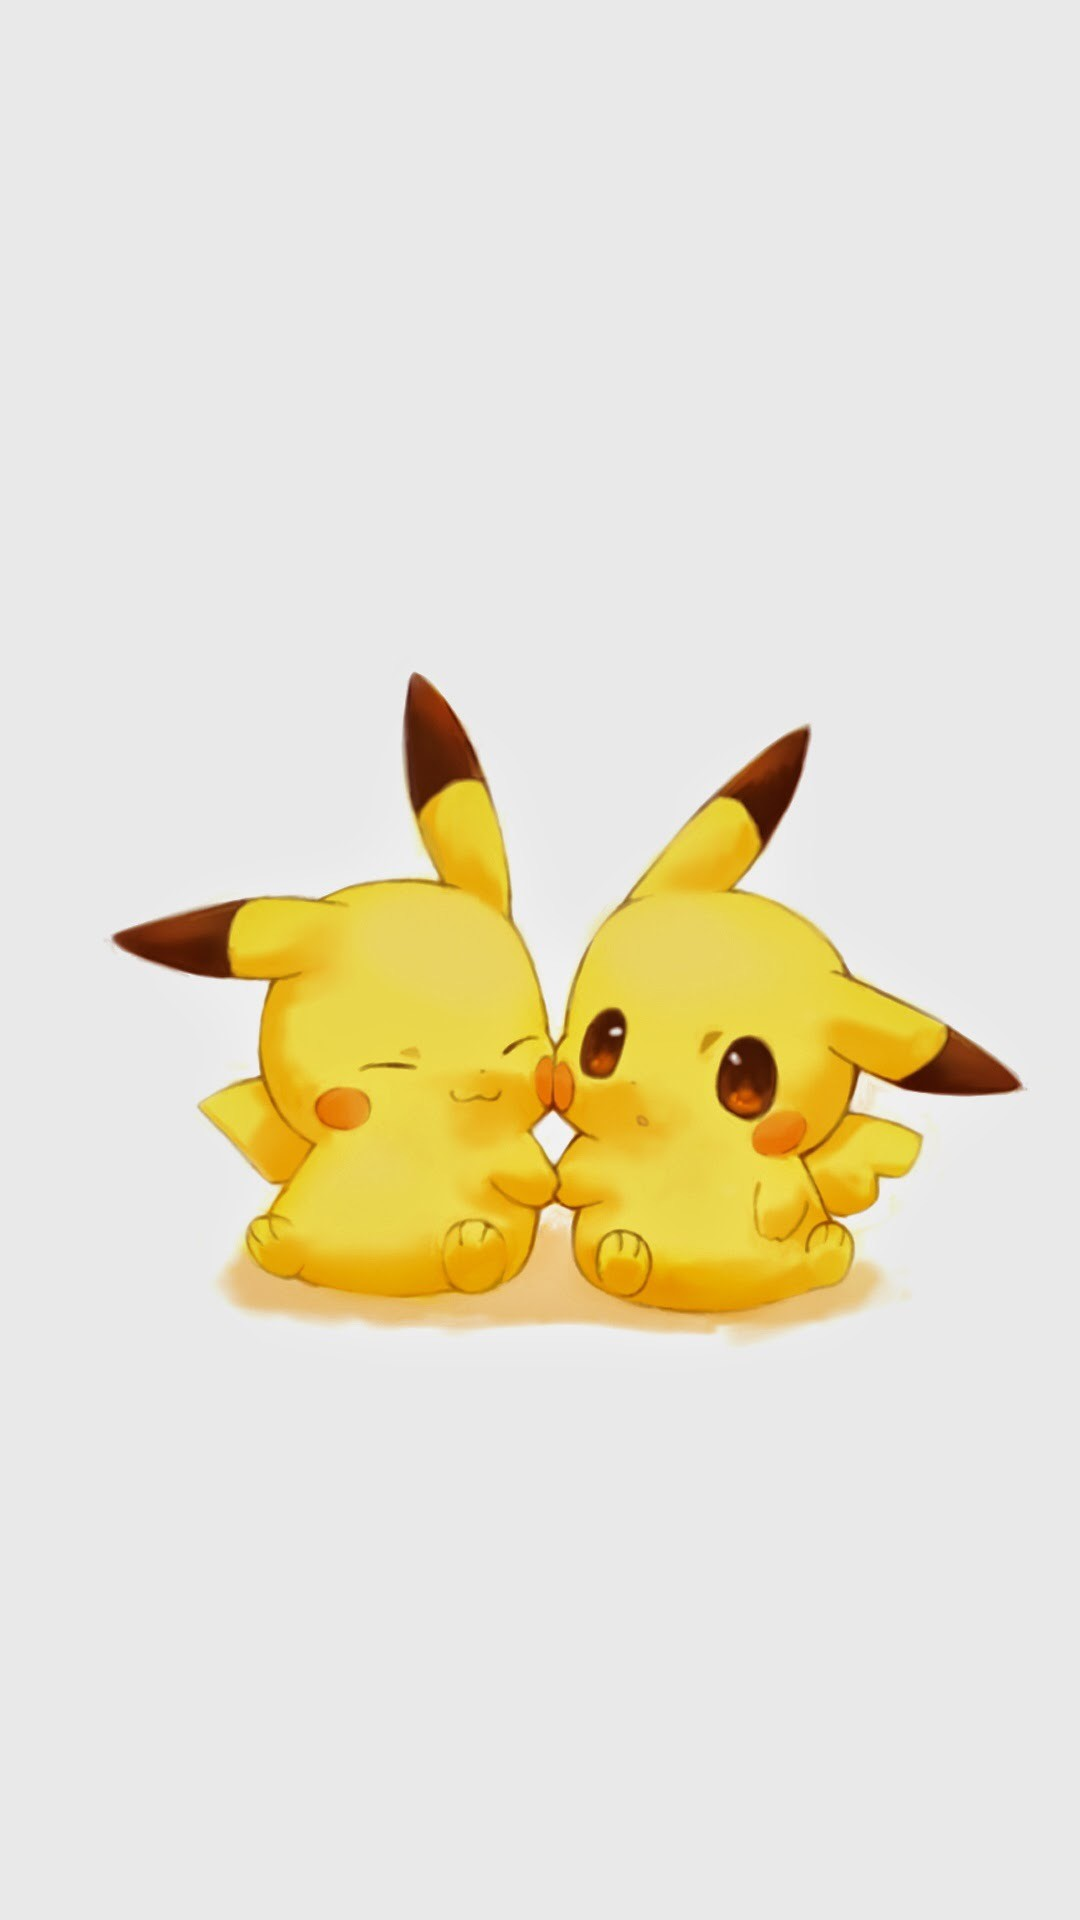 1080x1920 Tap-image-for-more-funny-cute-Pikachu-Pikachu-mobile-for-iPhone-s-c- wallpaper-wpt720241